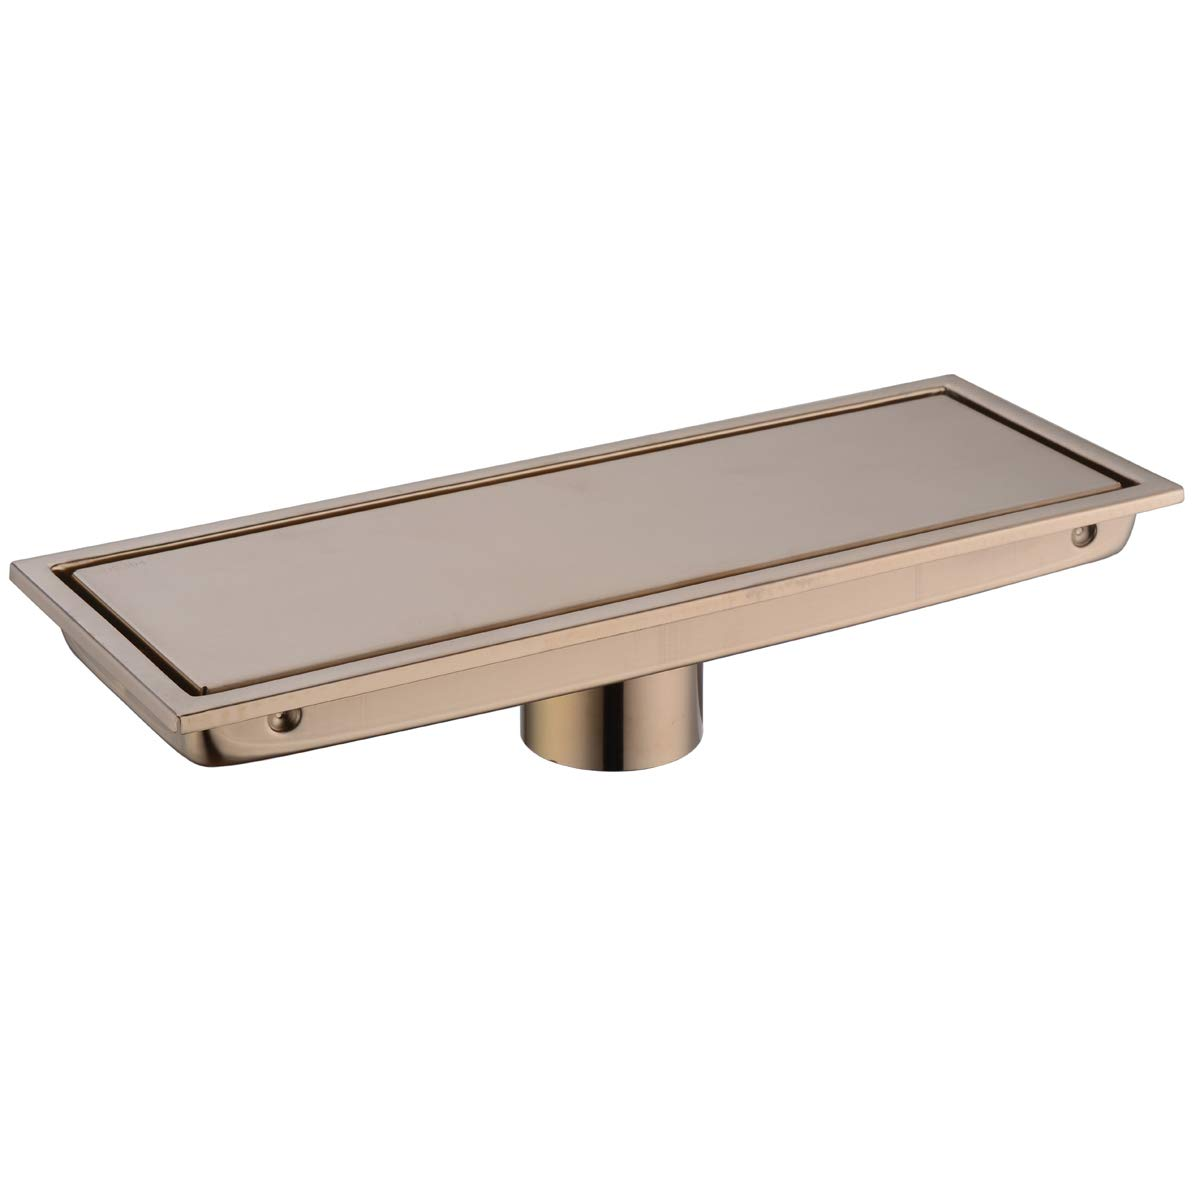 Bathroom Stainless Steel 12 Inch Linear Shower Floor Drain with Tile Insert Grate,Champagne Bronze by Brushed Gold